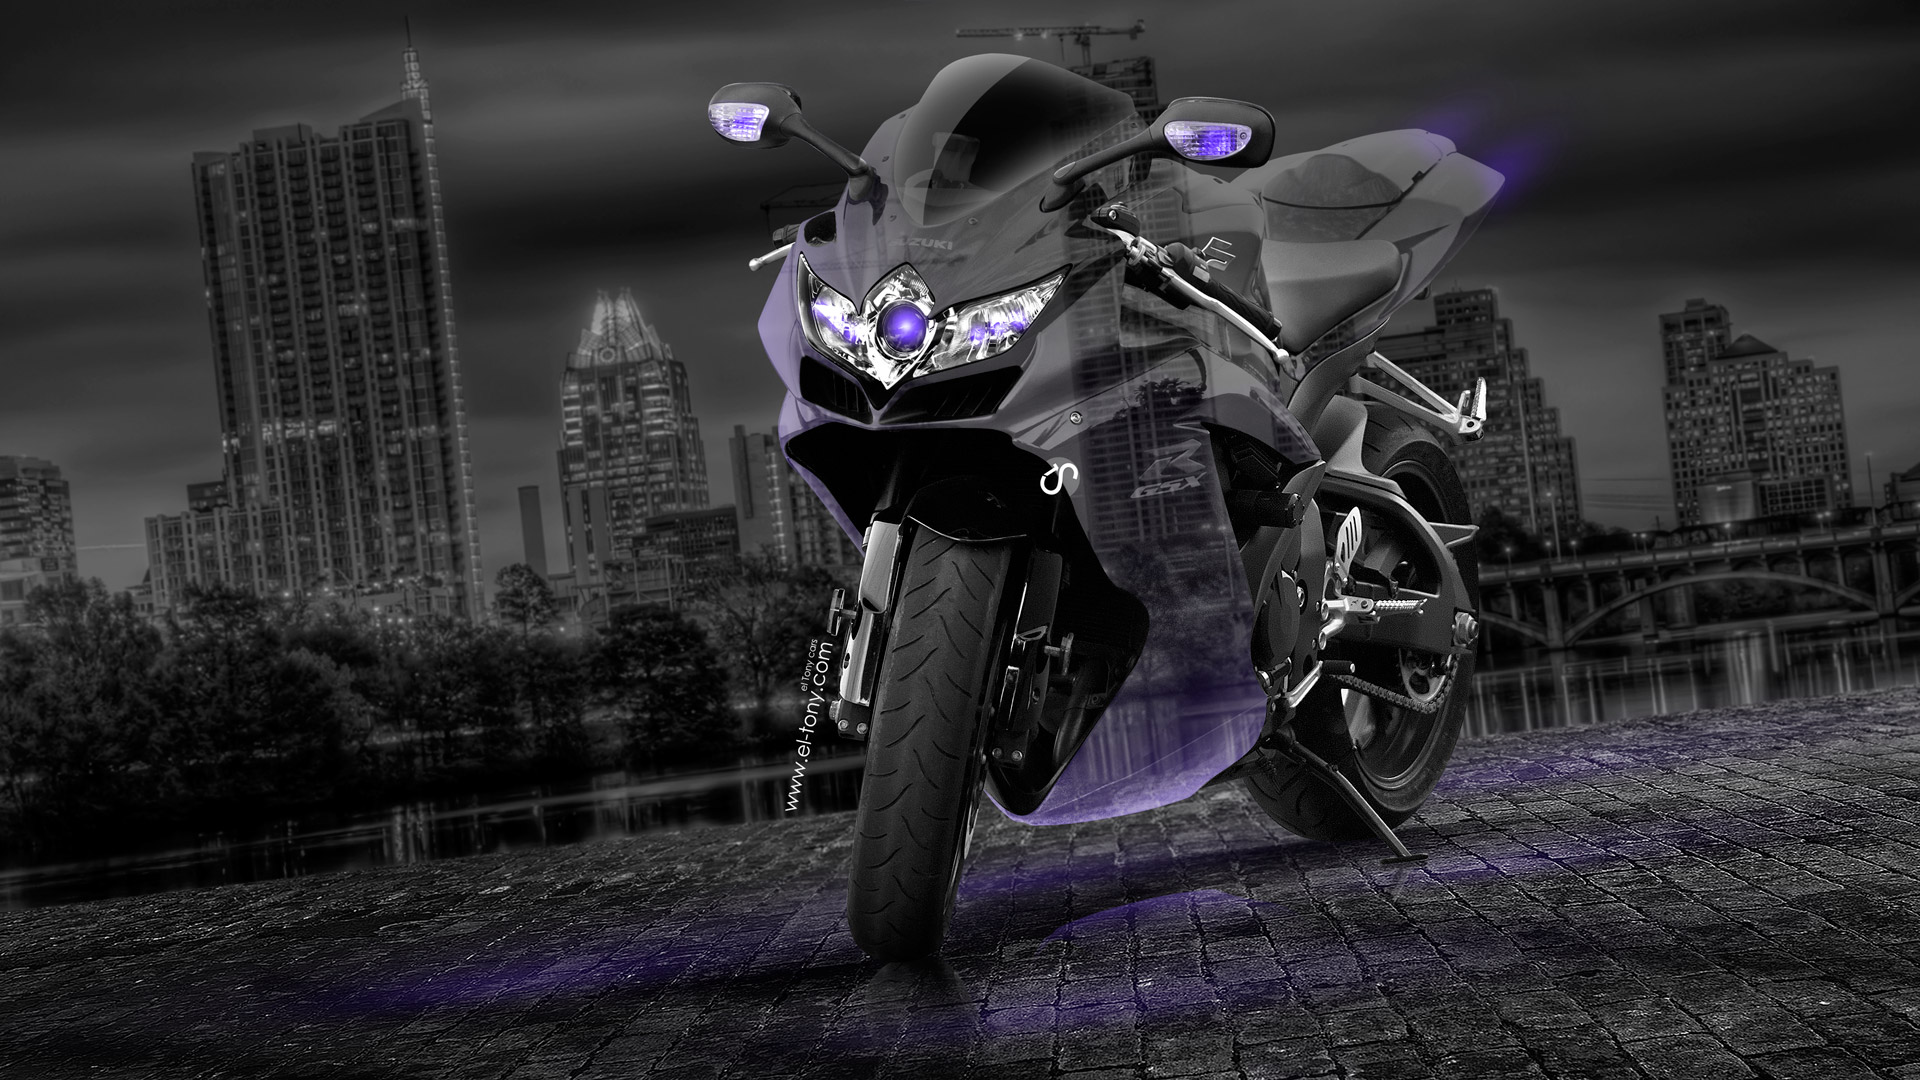 Suzuki GSX R750 Crystal City Bike 2014 | El Tony